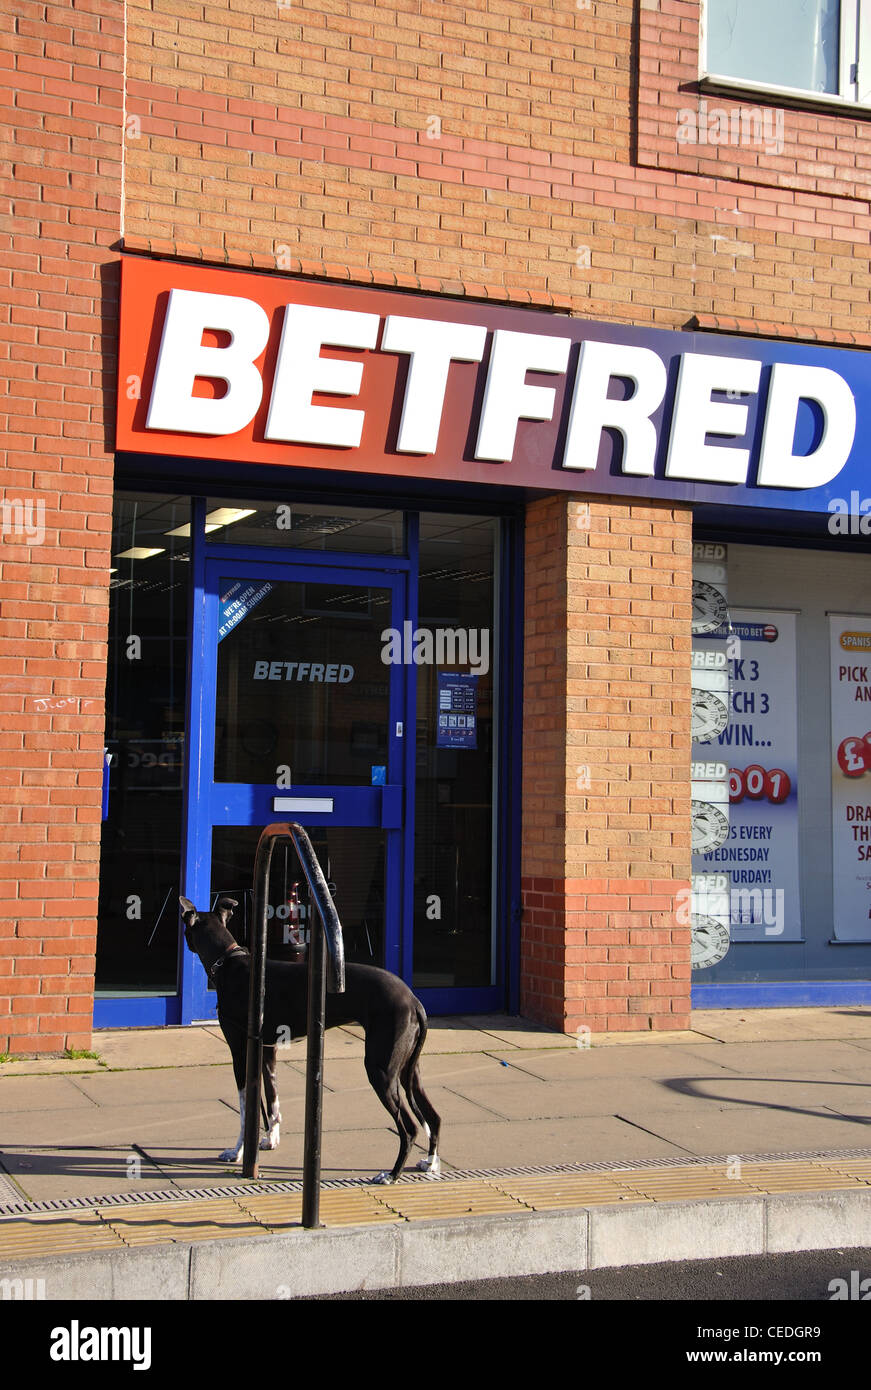 Betfred betting shop,Middle Street, Consett, Co Durham, England, UK - Stock Image